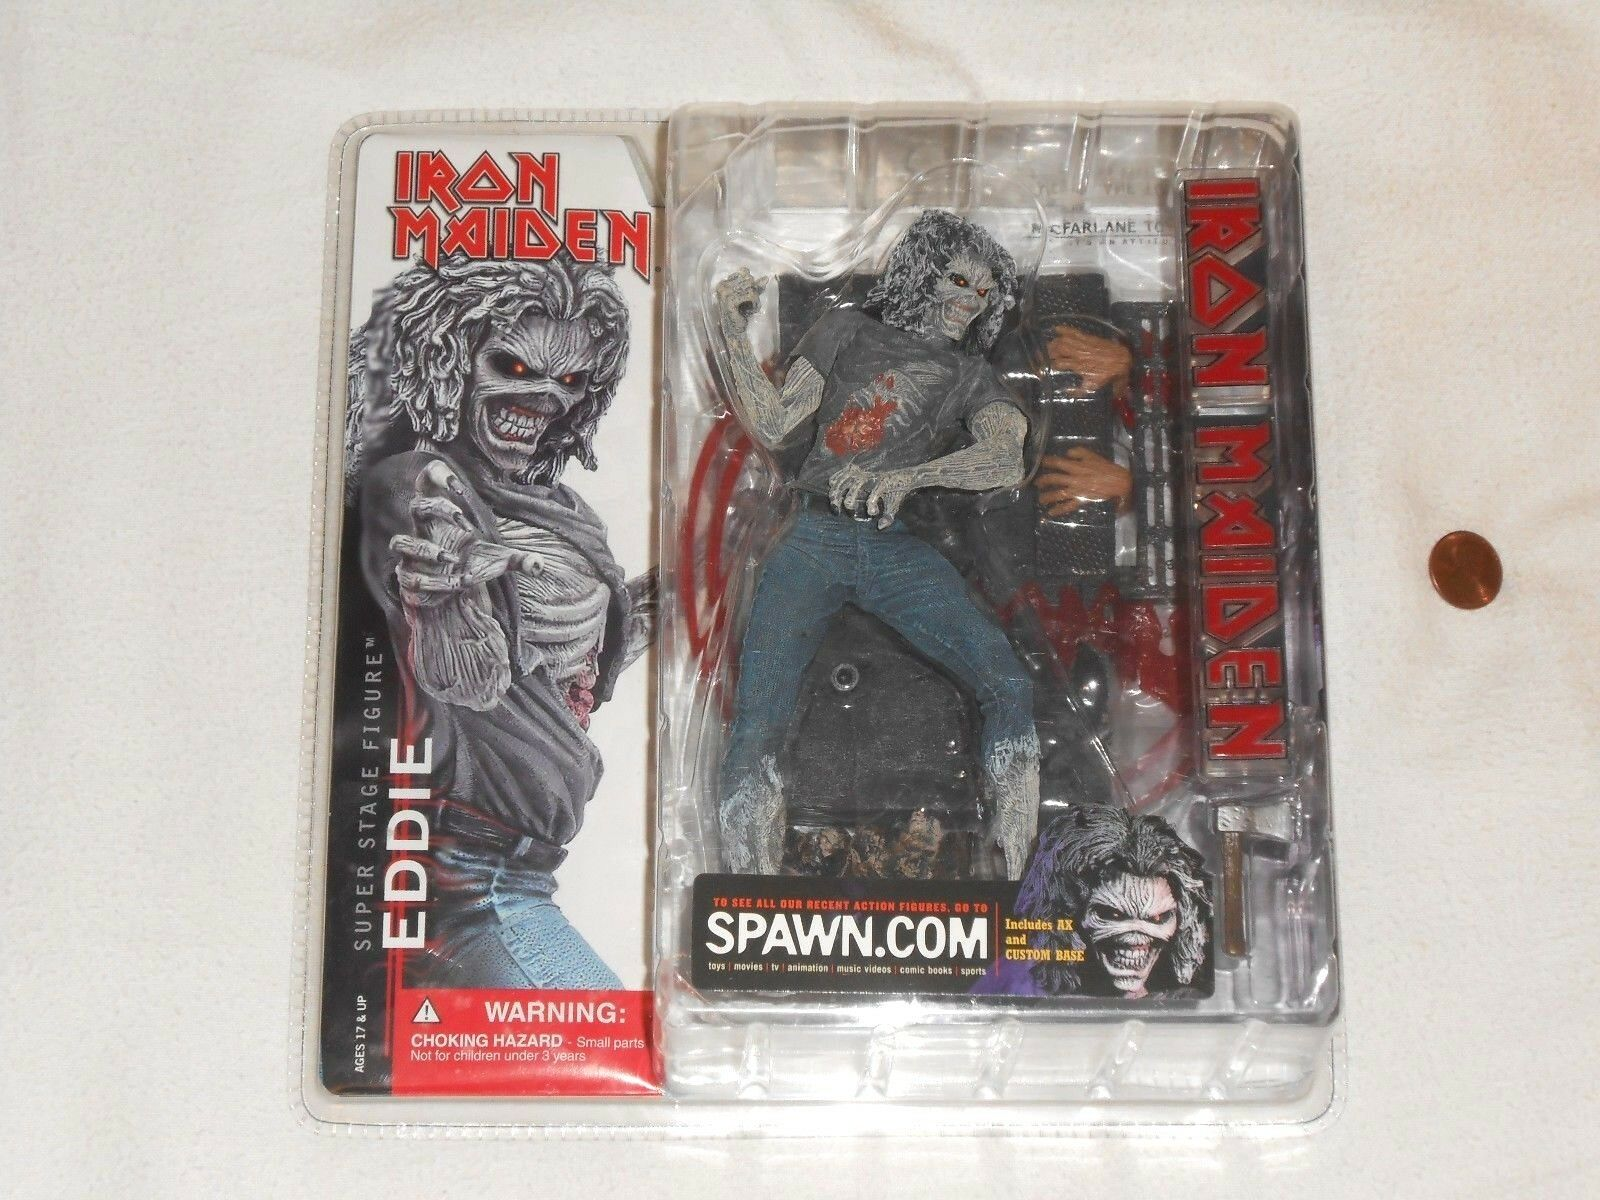 NEW Iron Maiden Eddie Killers Super Stage Action Figure Rare Toy Macfarlane ED